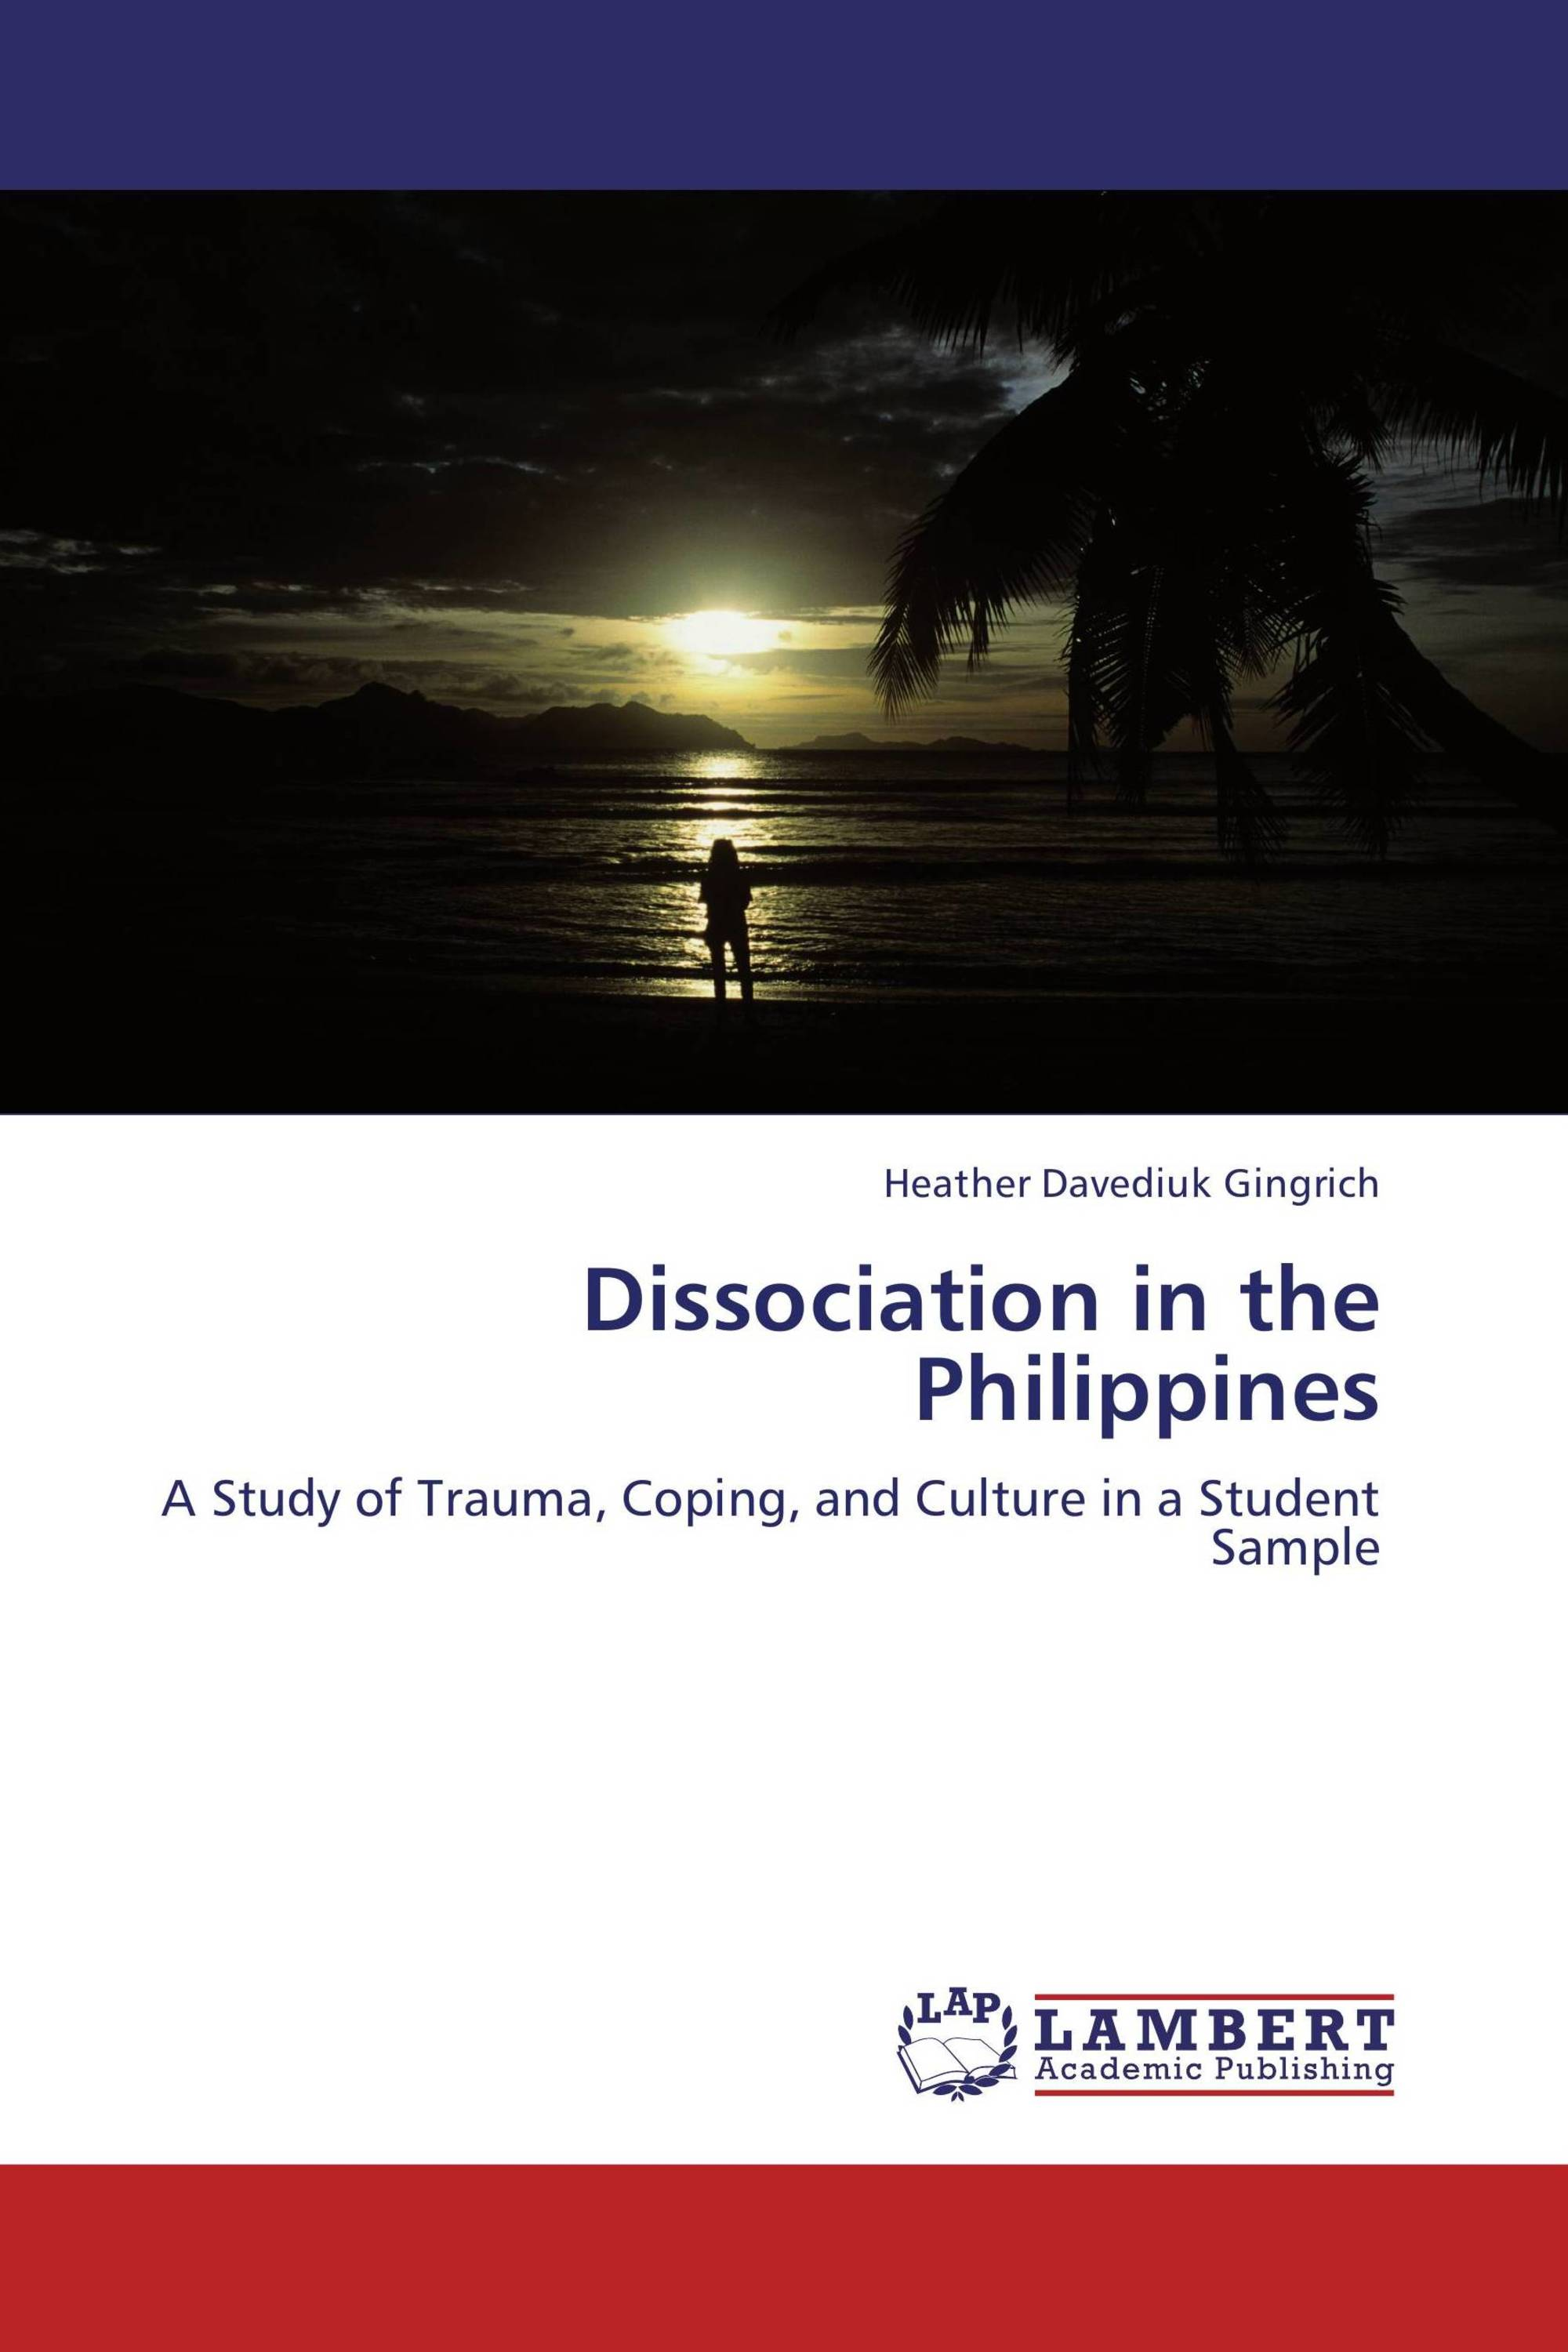 Dissociation in the Philippines